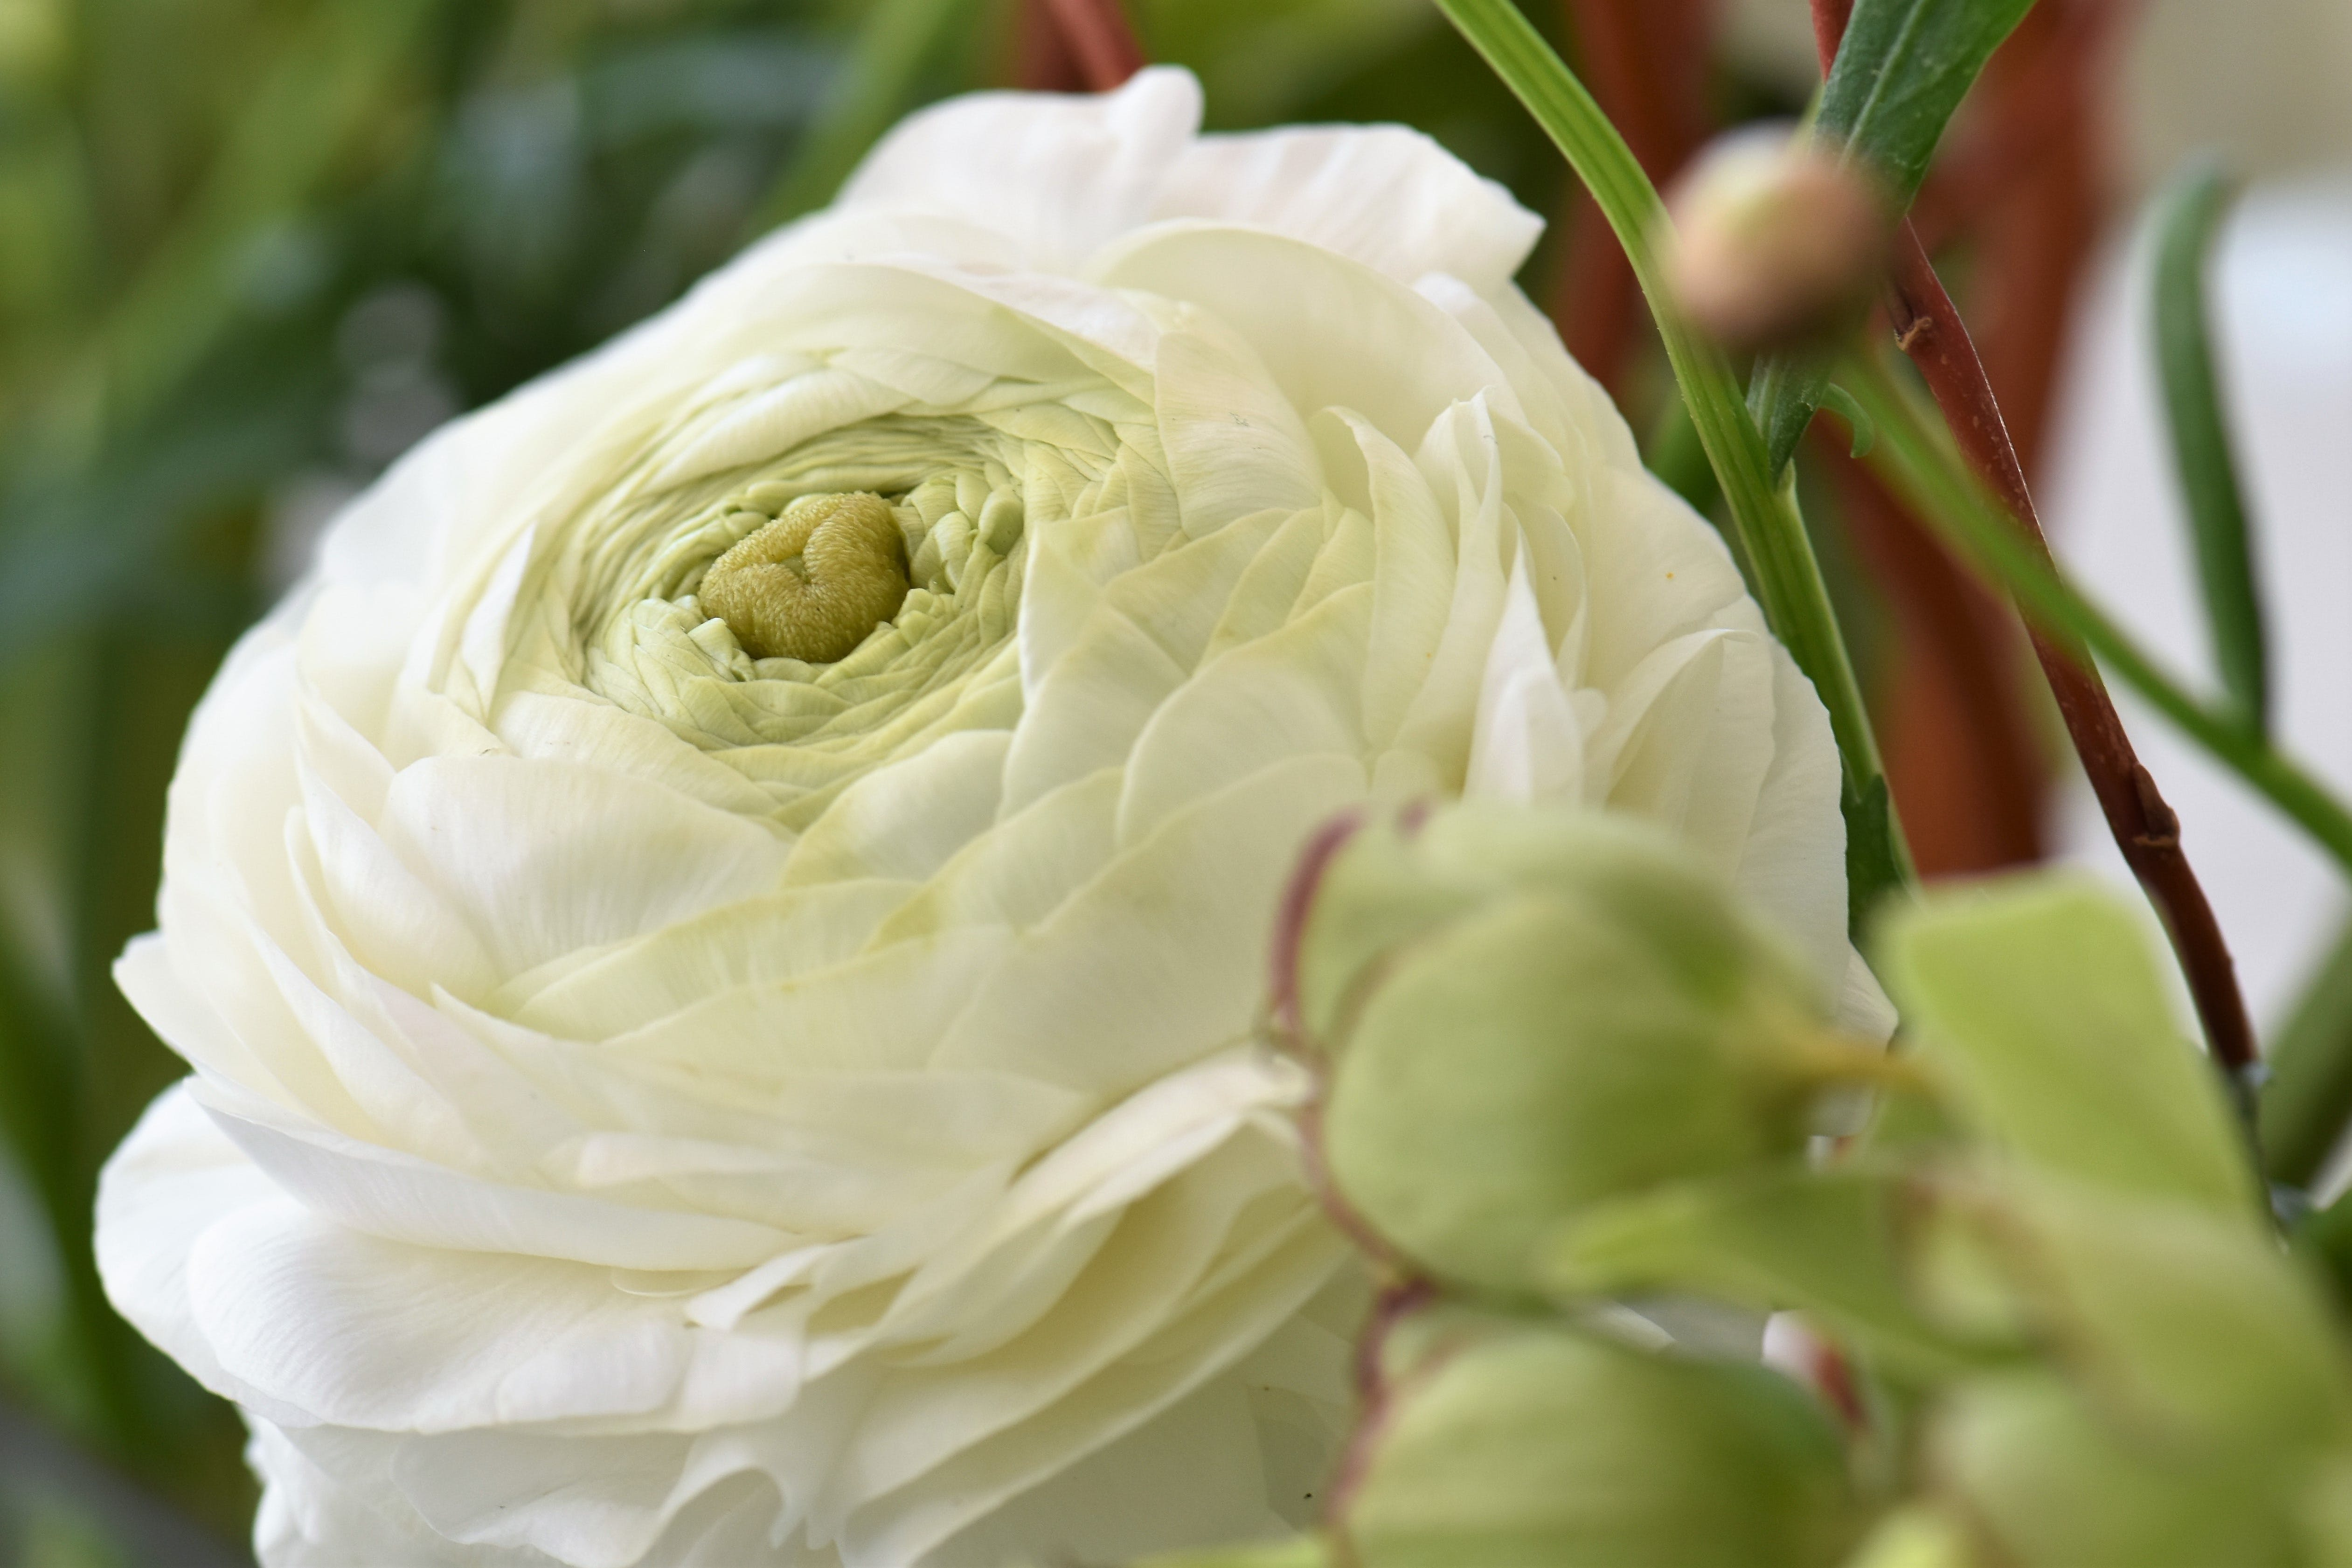 Free stock photo of bouquet, christian roses, flower blossom, leaves